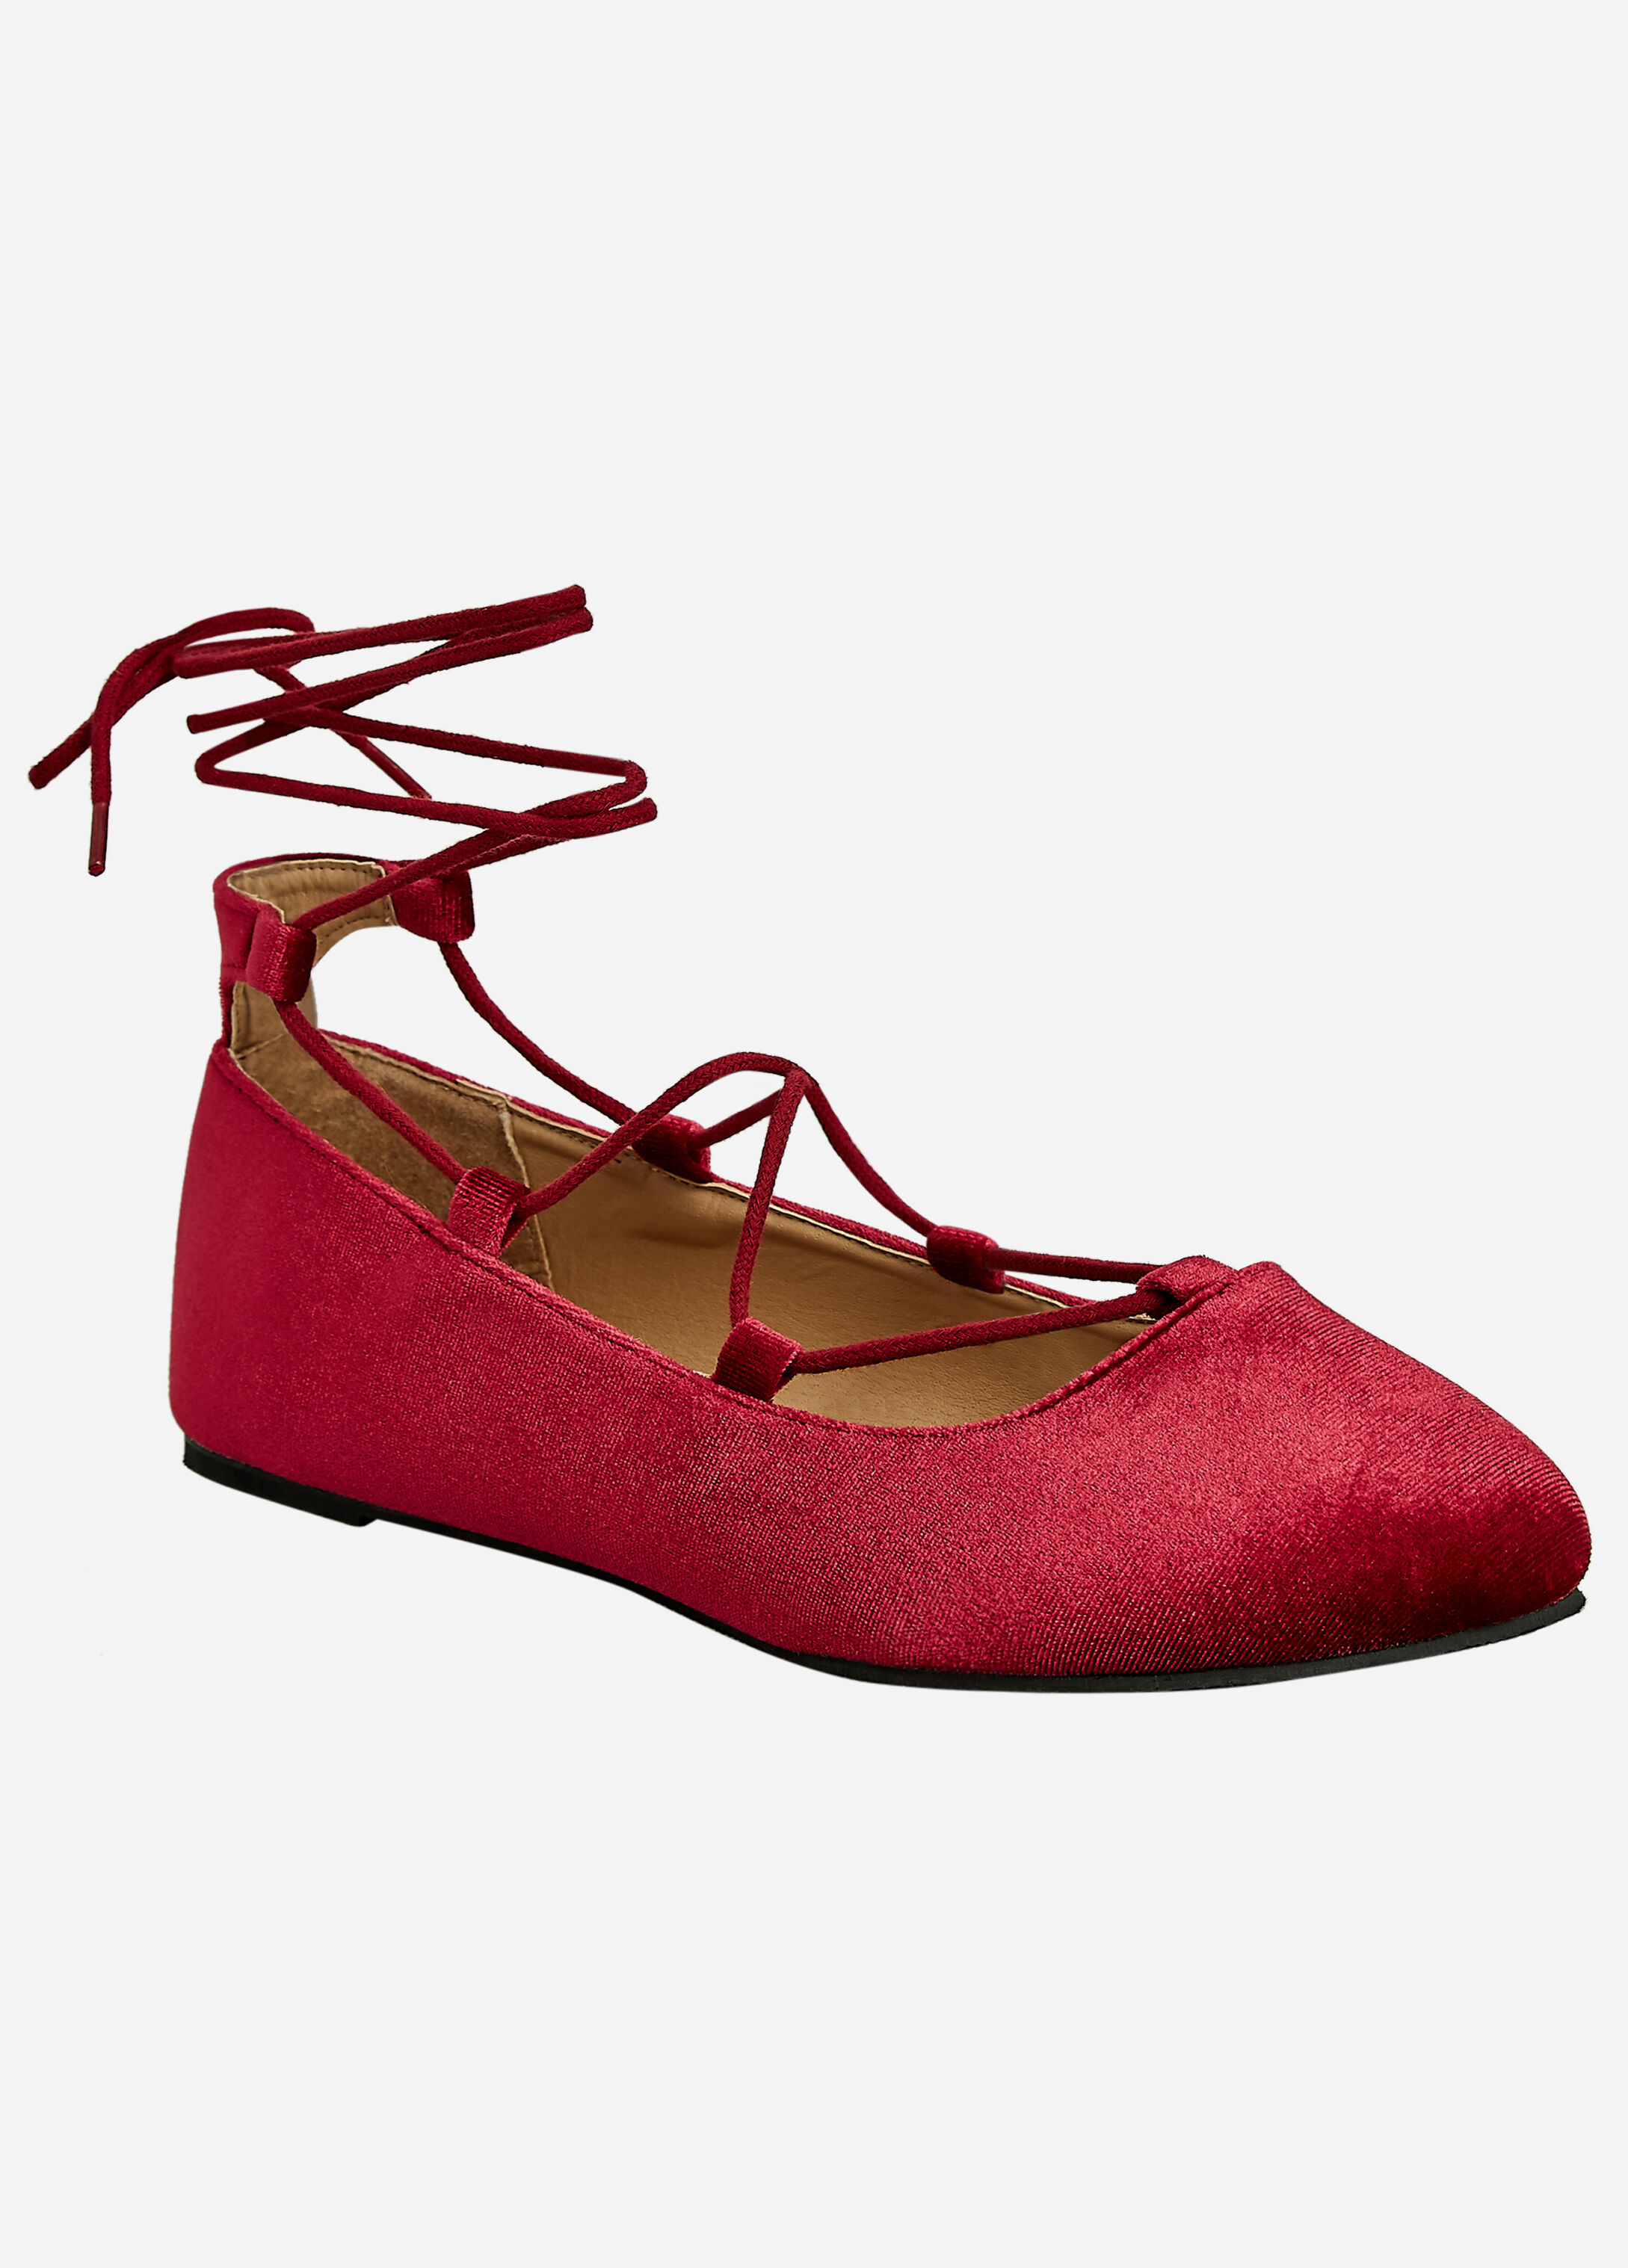 Velvet Lace Up Flat - Wide Width Wine - Clearance